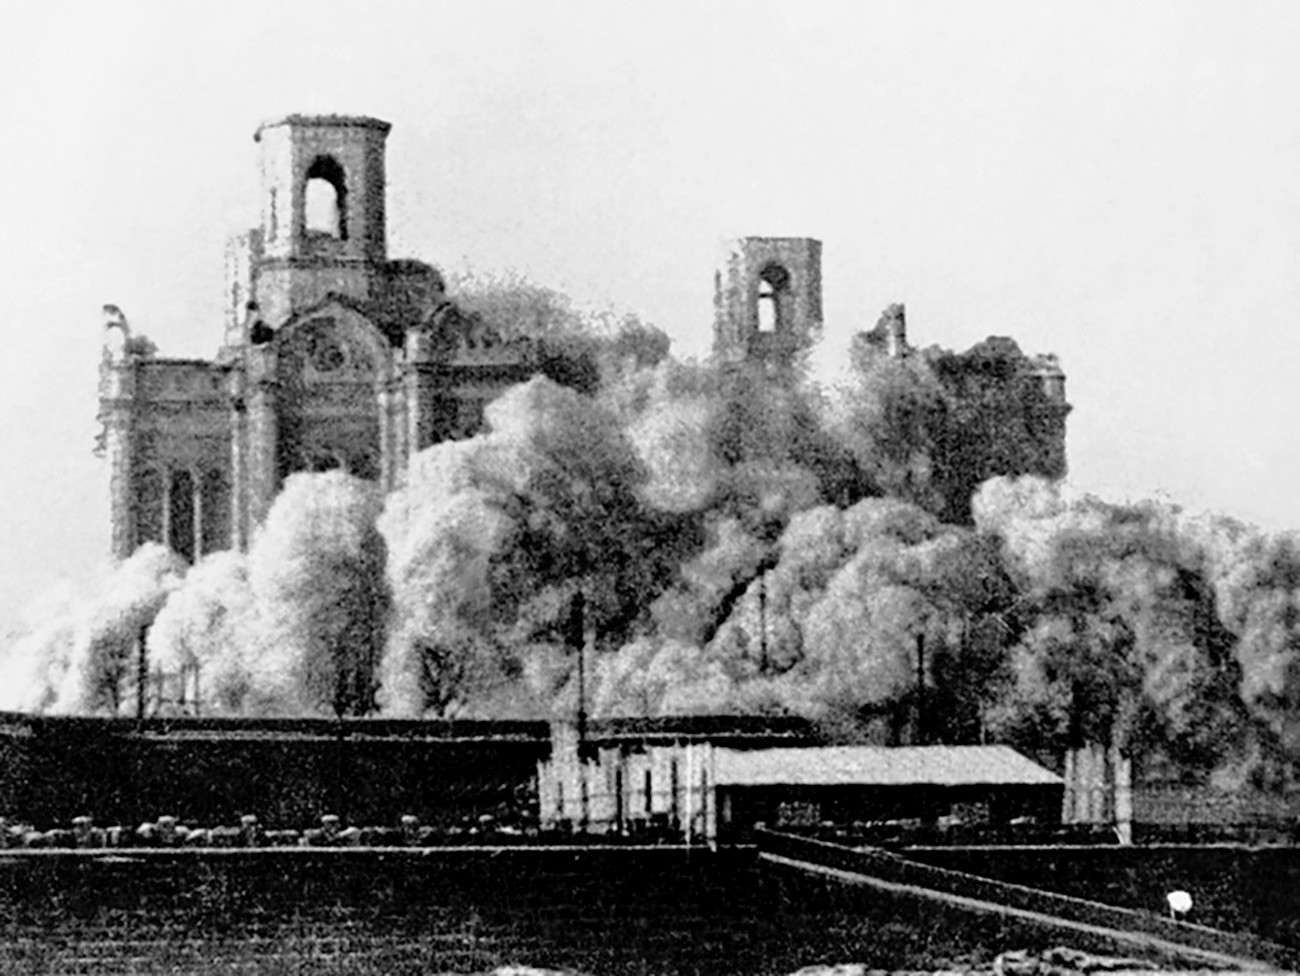 Blowing up the Cathedral of Christ the Savior in 1931